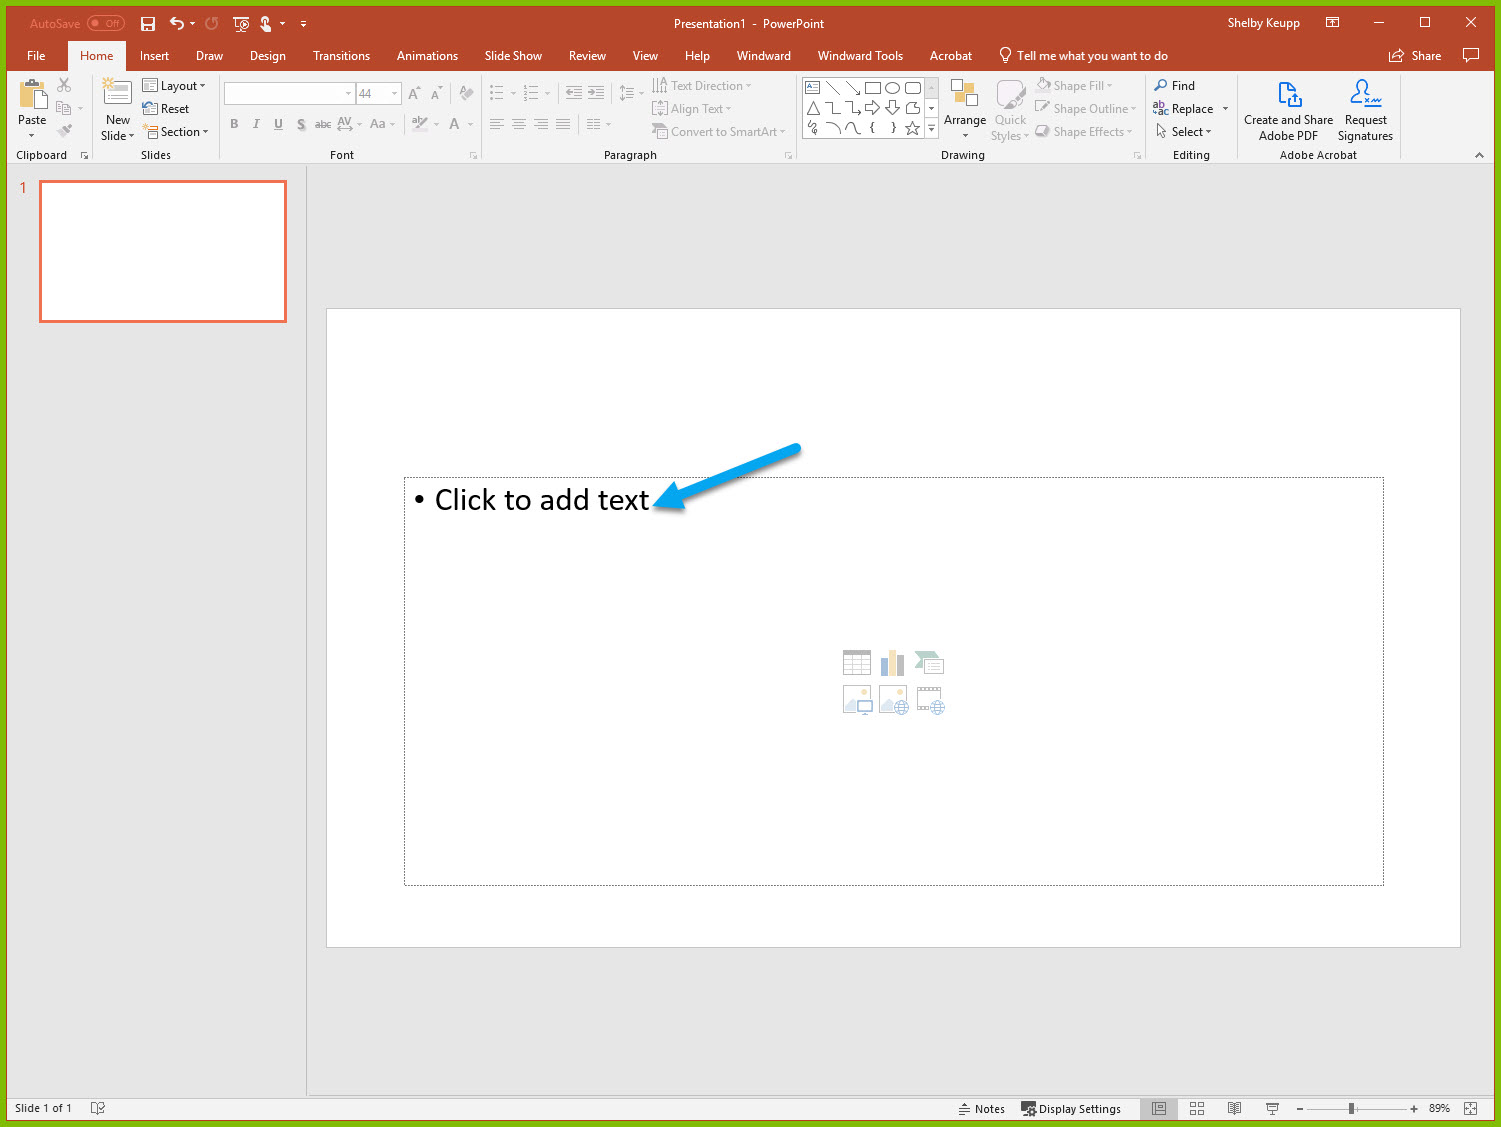 SQL Data in a PowerPoint Template